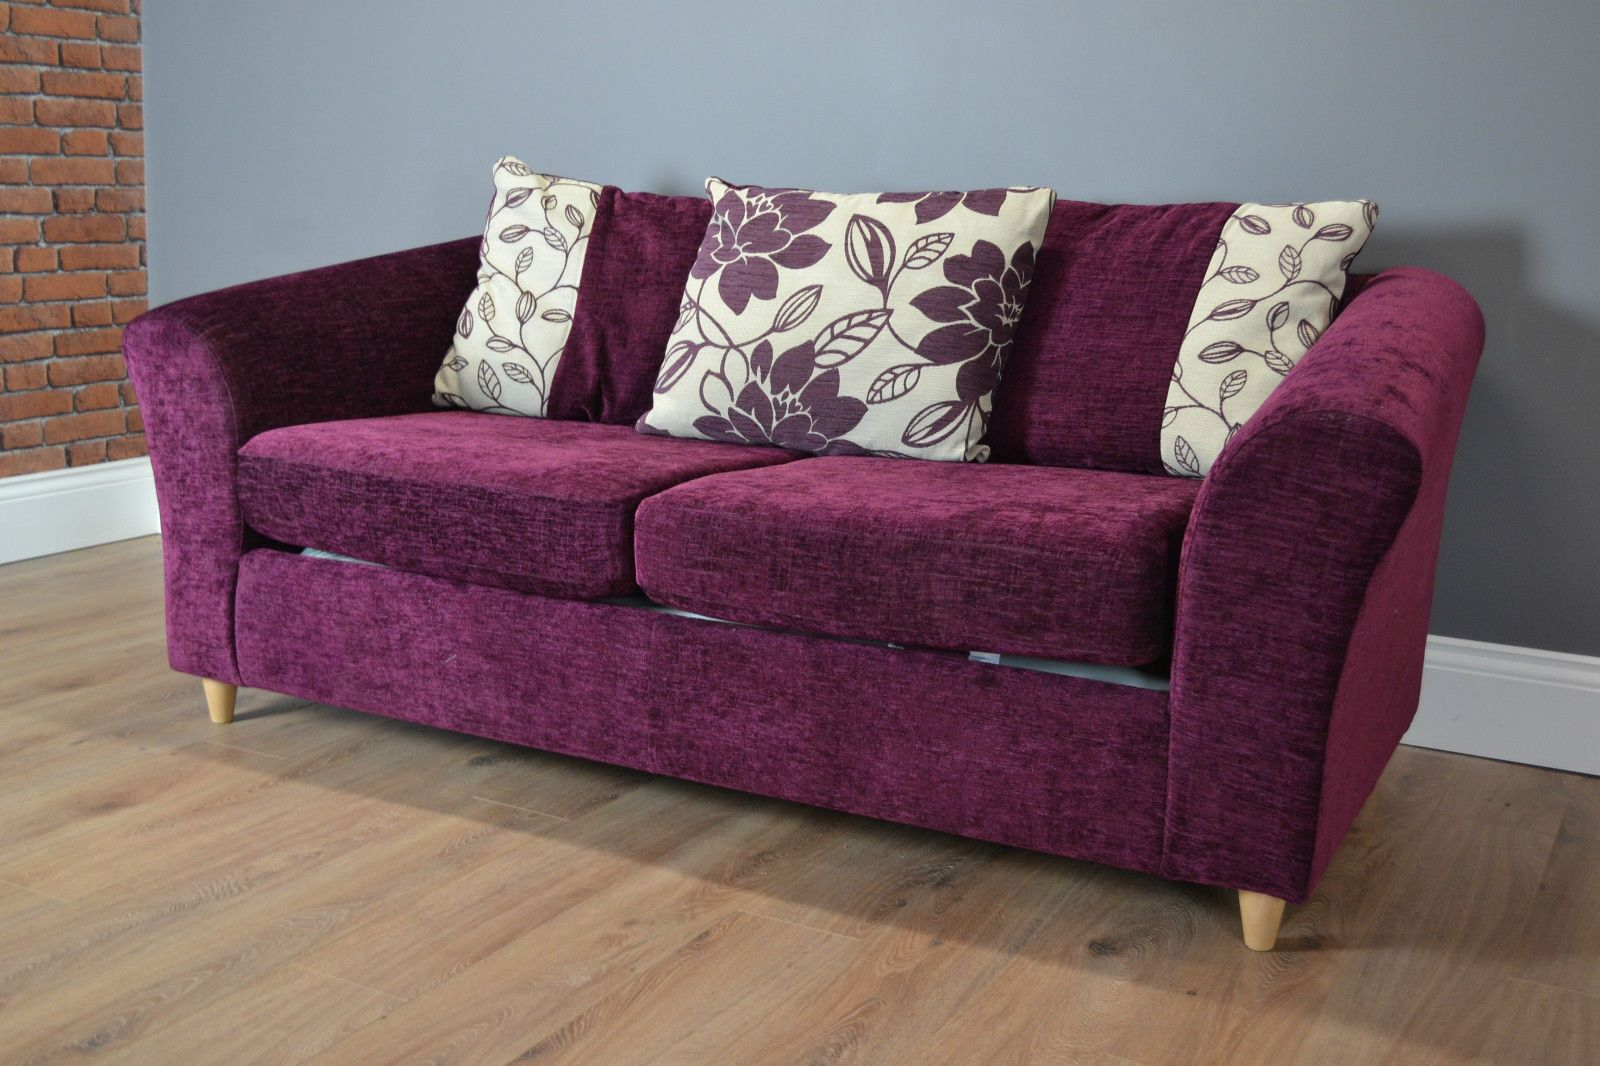 Moheda Sofa Bed   Single Sleeper Chair   Fold Out Bed Chair